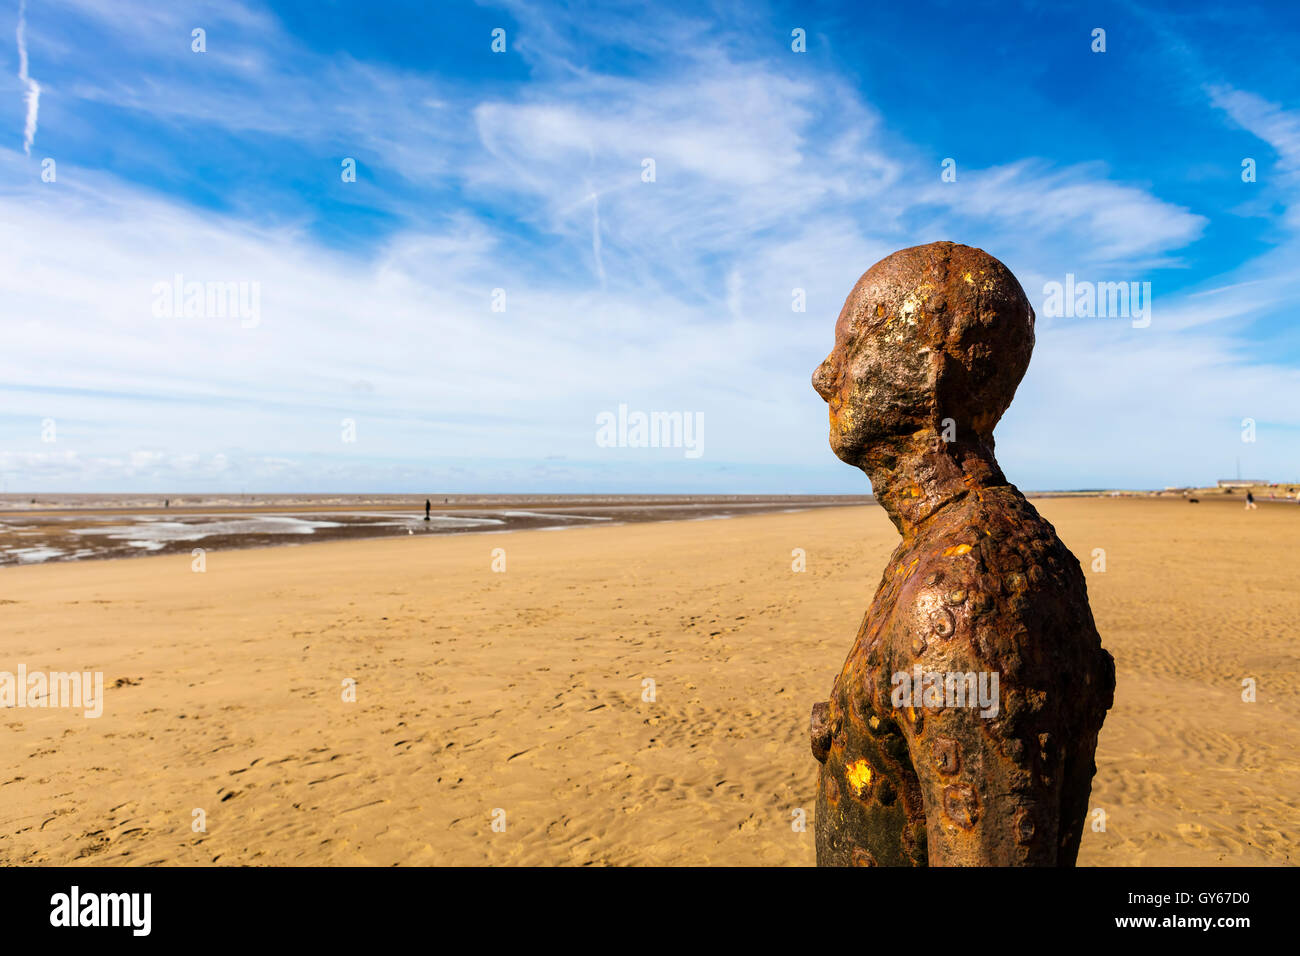 Crosby Beach near Liverpool with cast iron sculptures. - Stock Image